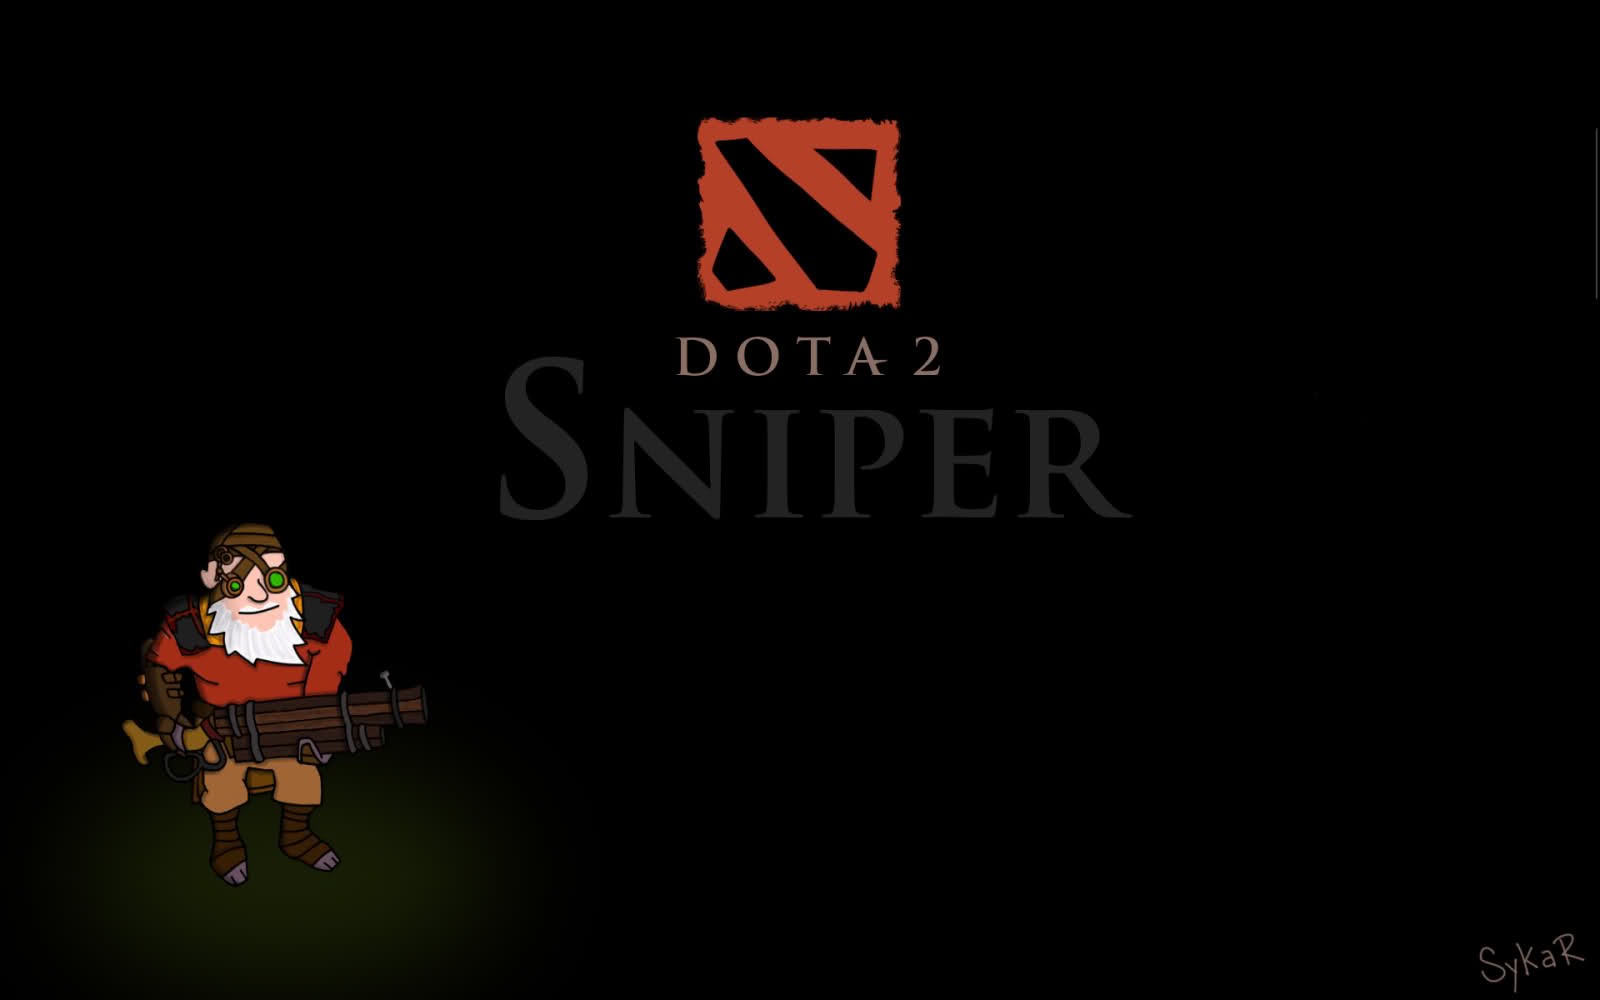 Dota2 : Sniper widescreen for desktop